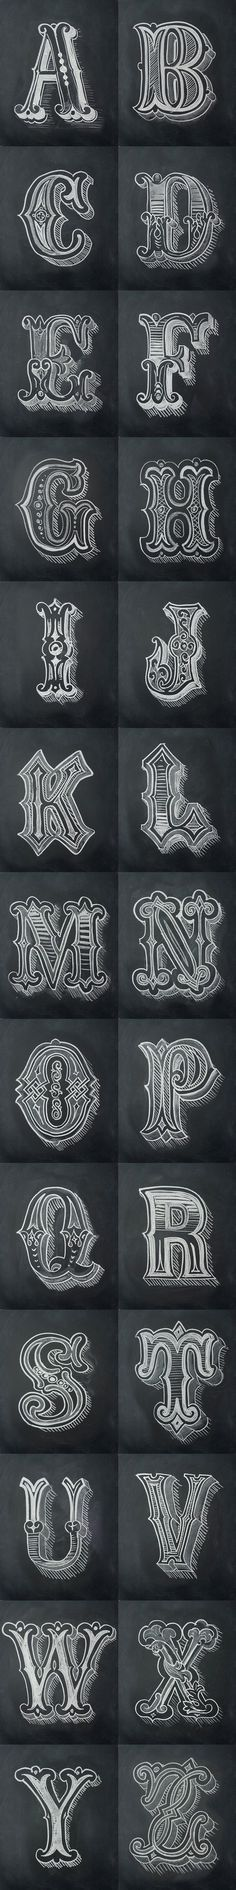 Chalk Alphabet by Antonio Rodrigues Jr: